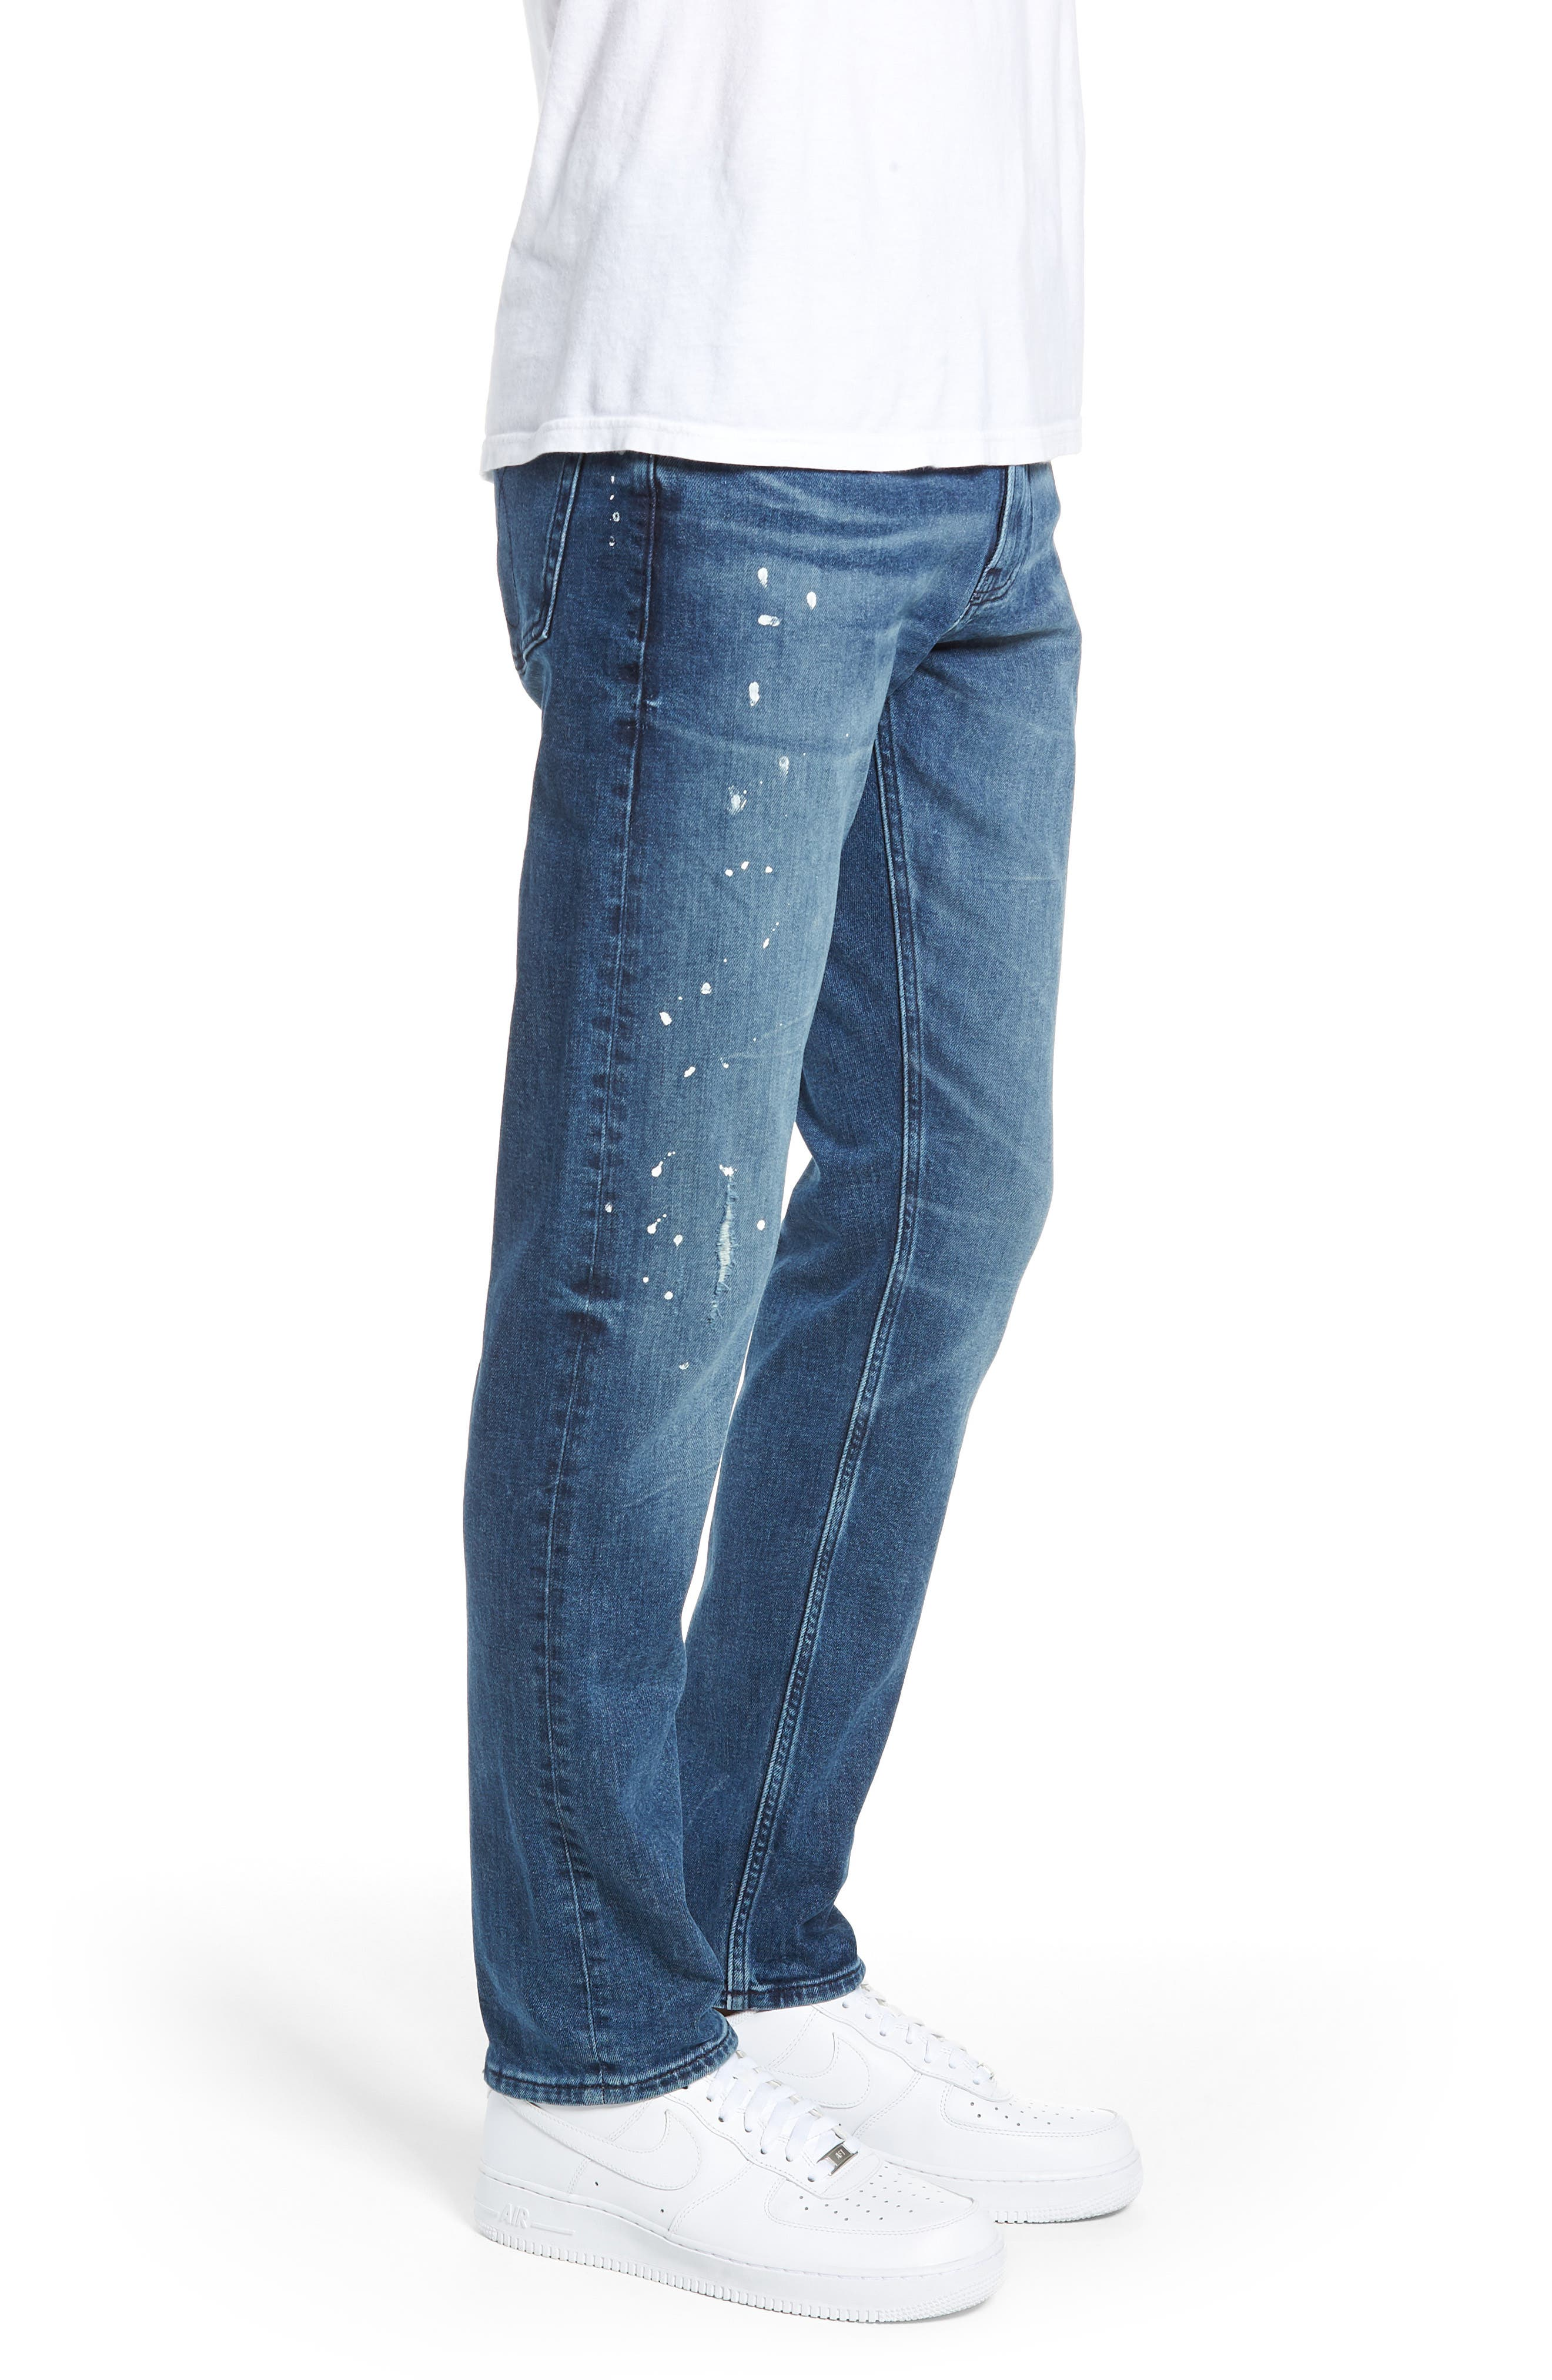 Calvin Klein Slim Fit Jeans,                             Alternate thumbnail 3, color,                             KINGPIN BLUE